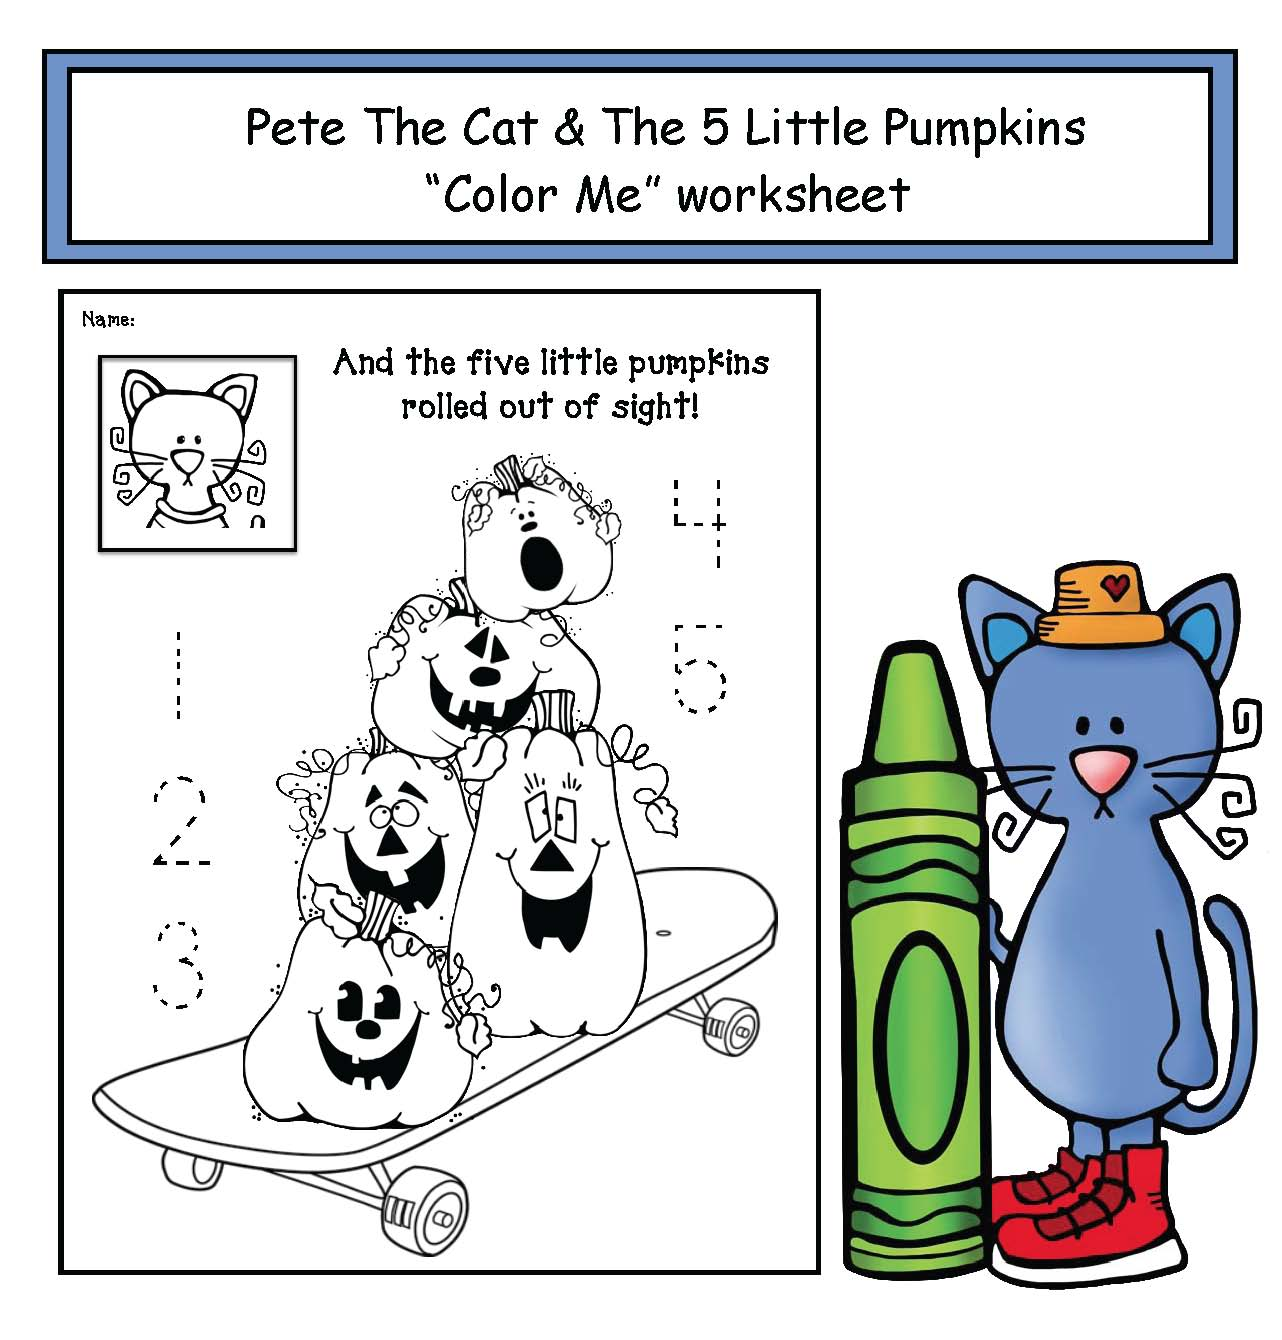 Pete The Cat And The 5 Little Pumpkins